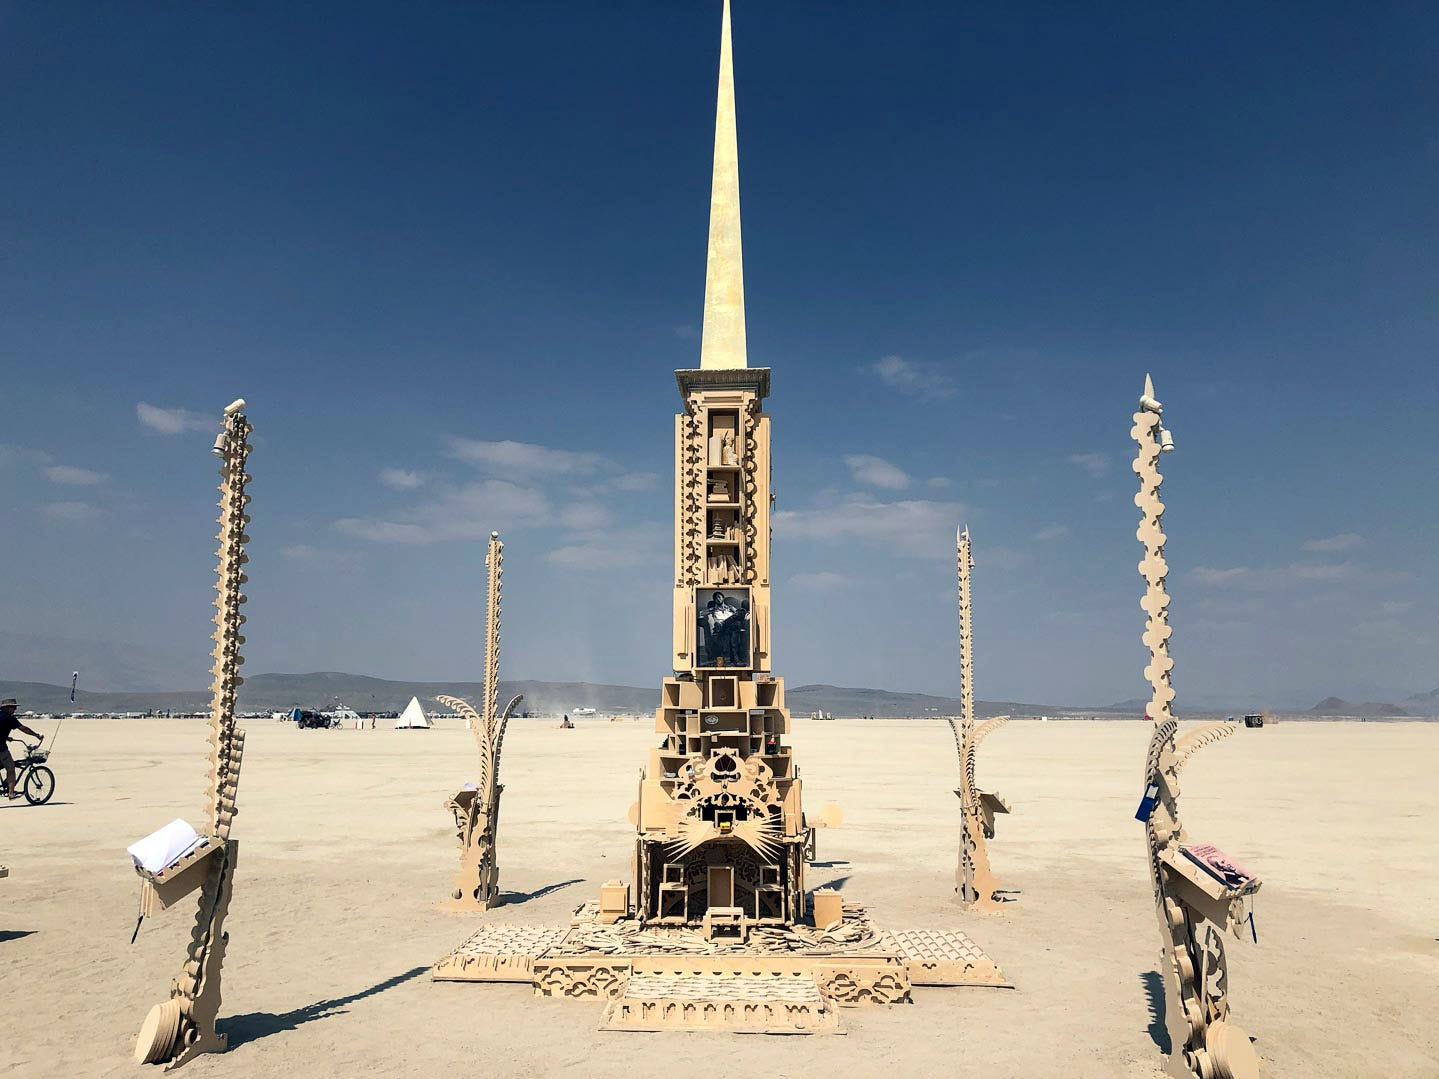 A small temple to Larry Harvey was erected near the large Galaxia temple in the playa at Burning Man 2018. Burners have been writing notes and leaving personal items on the temple shelves.